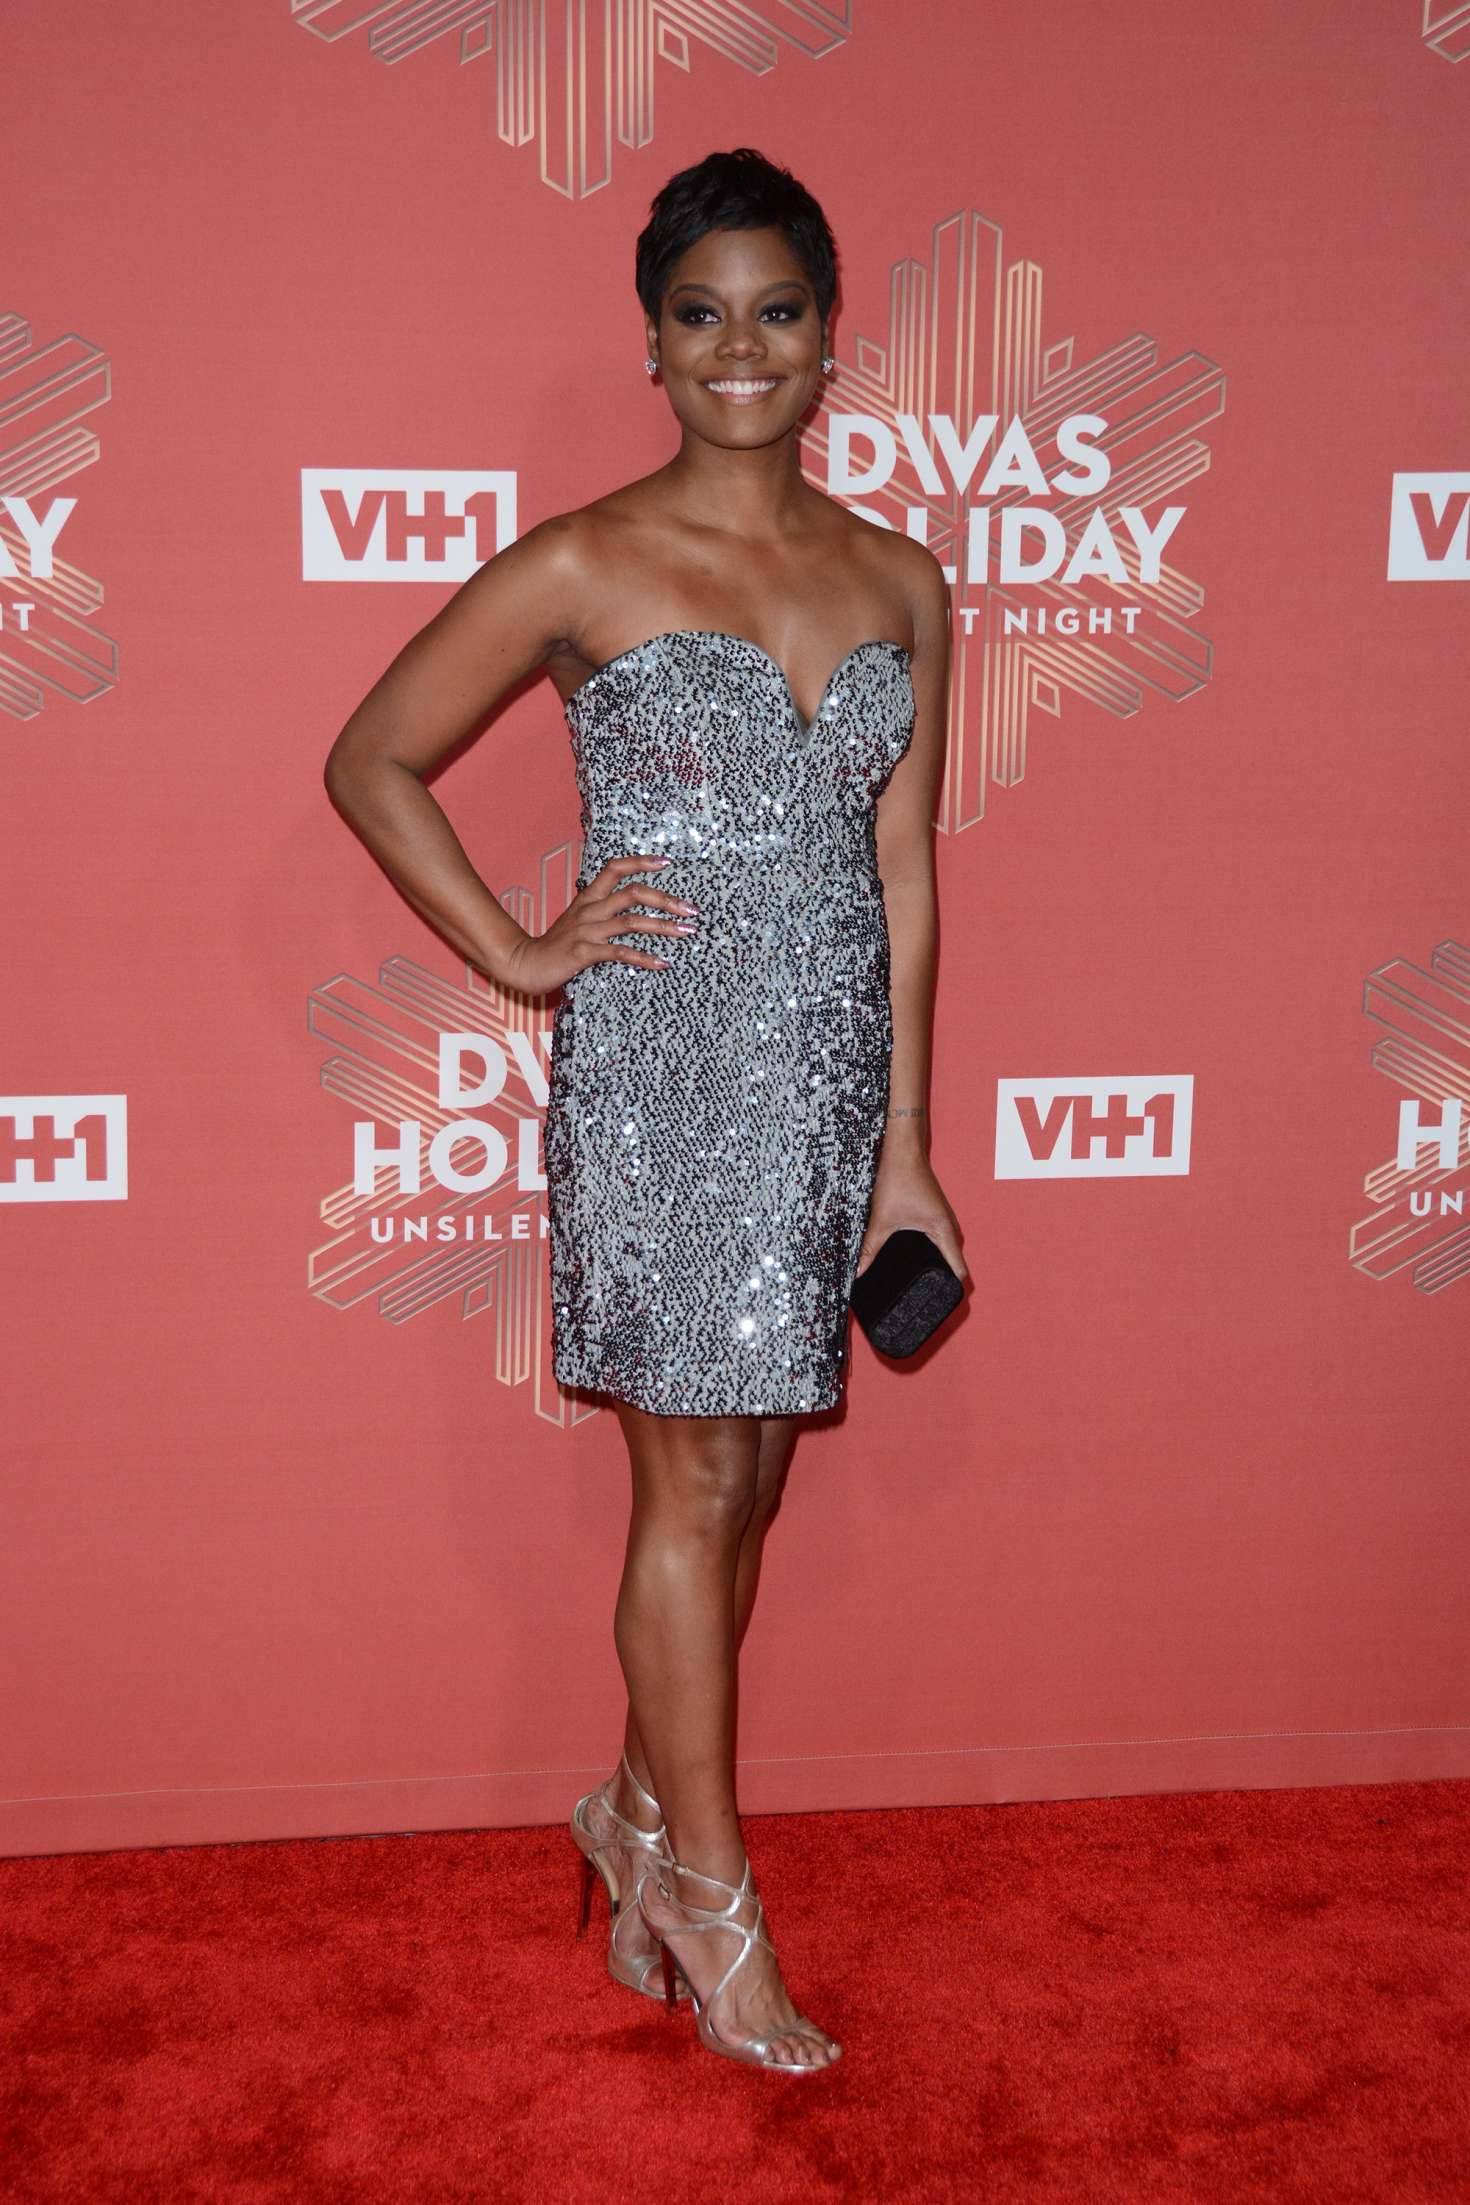 Afton Williamson: 2016 VH1s Divas Holiday: Unsilent Night -02 - Full Size